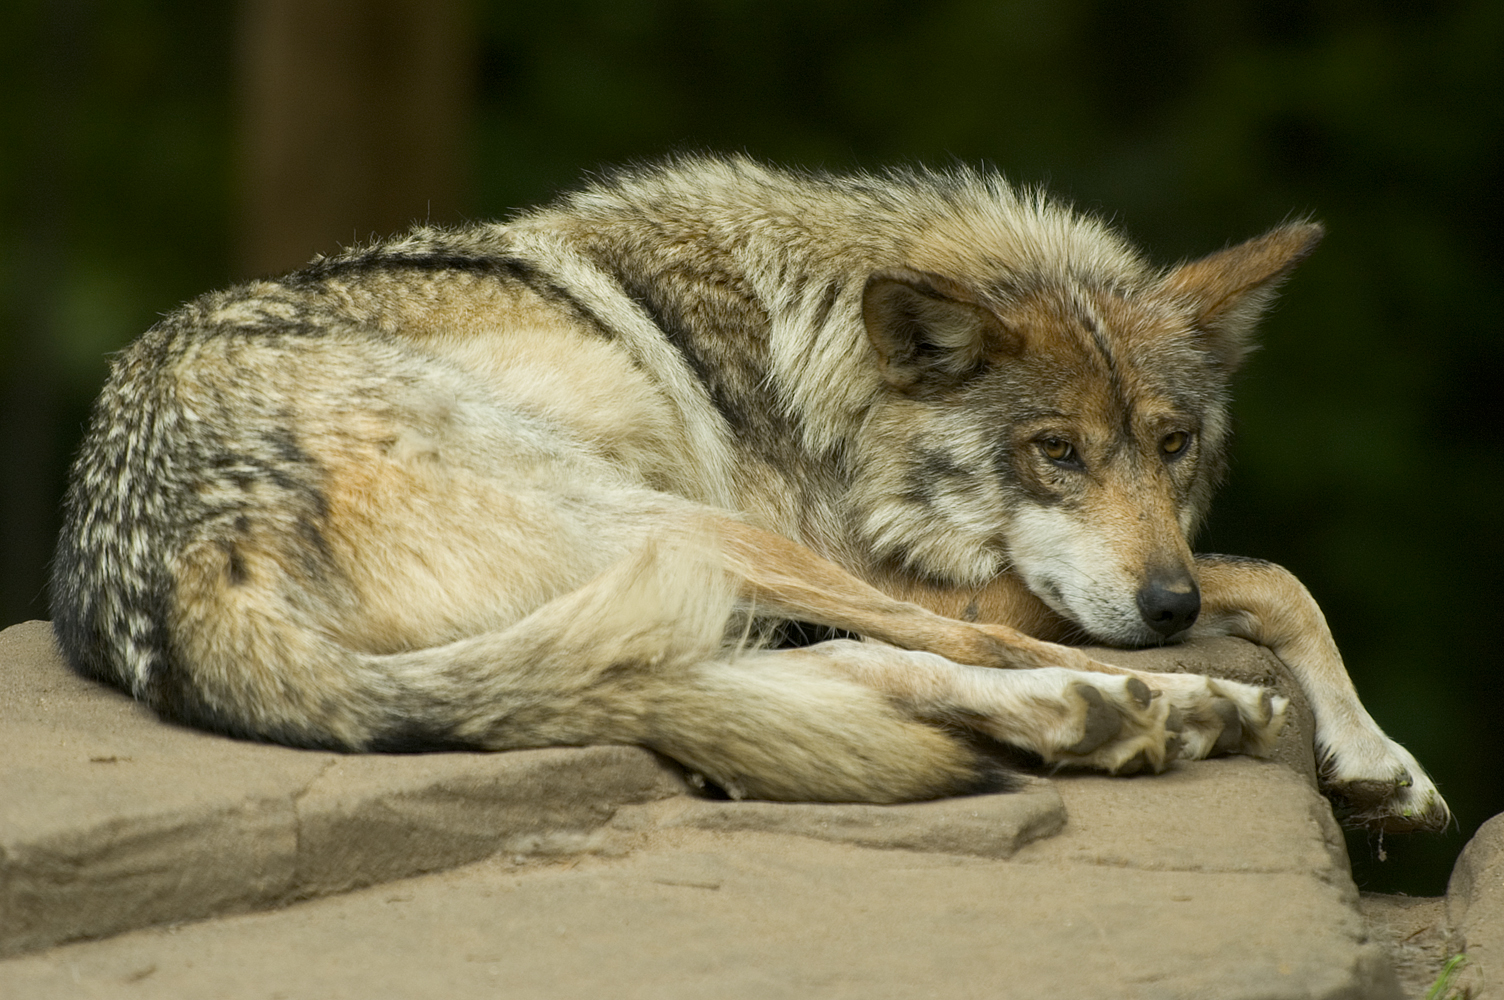 Governments in CO/UT/NM/AZ Deliberately Derailed Mexican Wolf Recovery, Documents Reveal (Investigative Report)